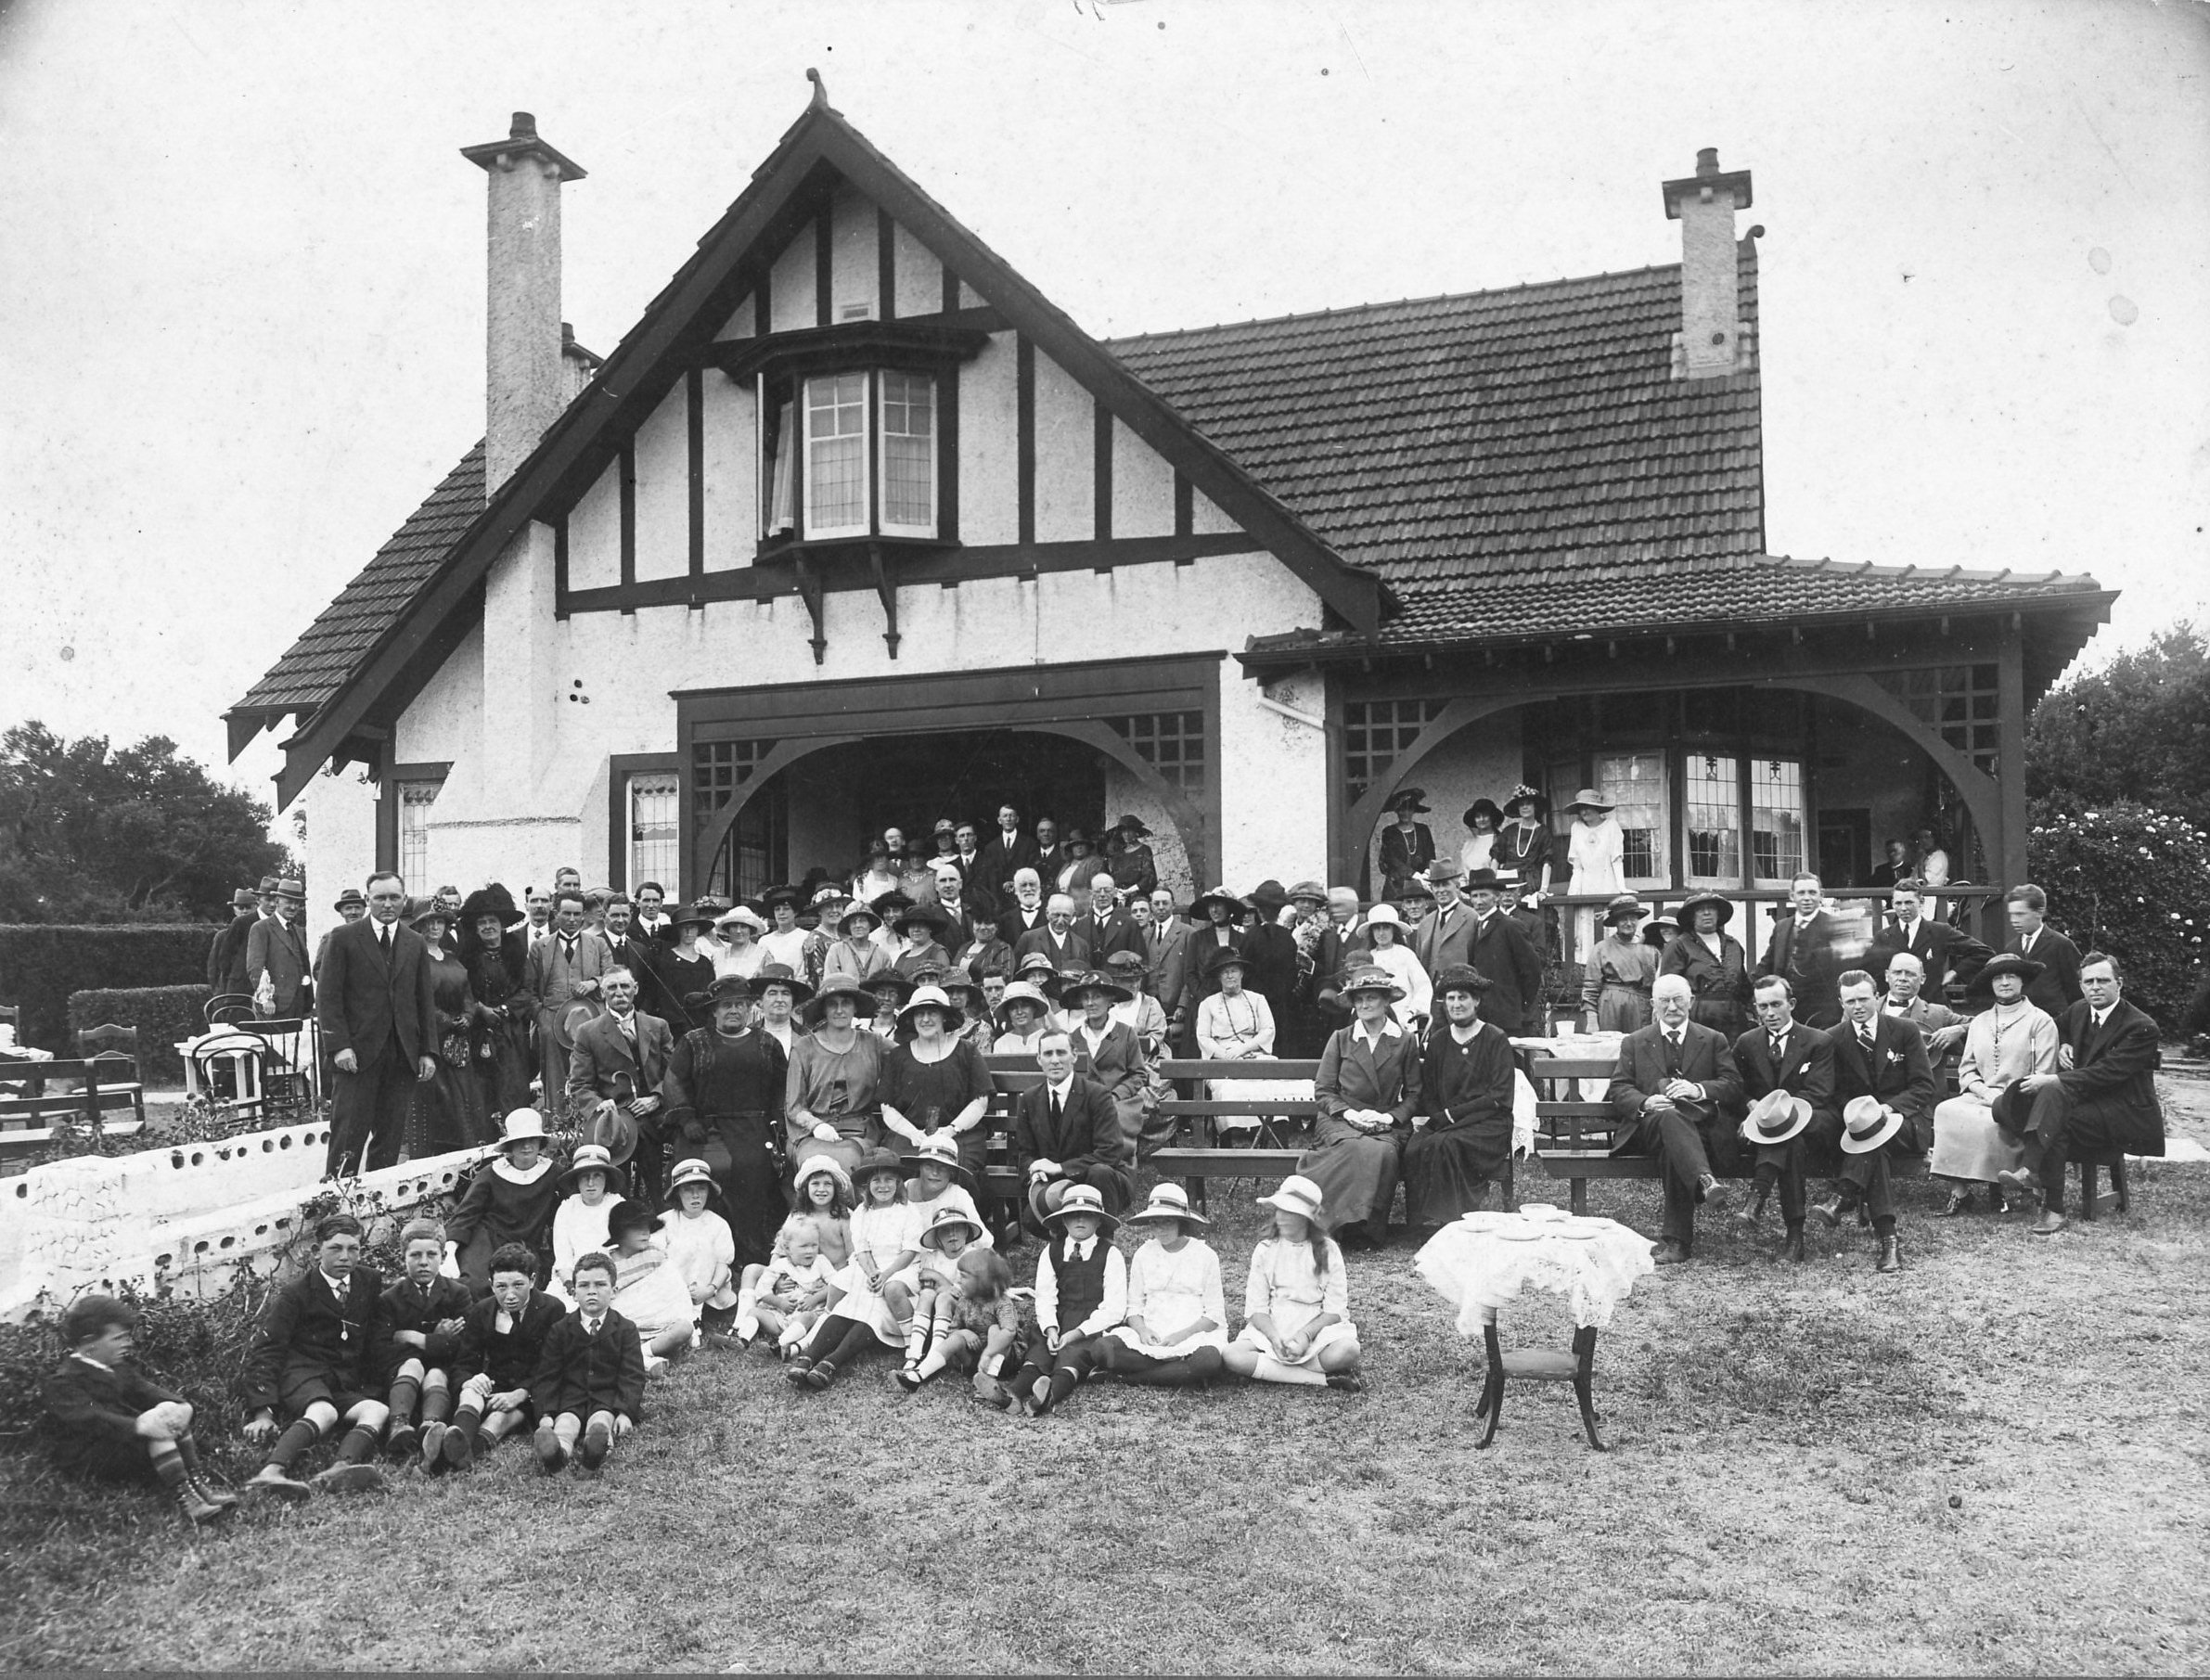 1923-Frogmore-1923-new-school-opening1.jpg?mtime=20170810000544#asset:586